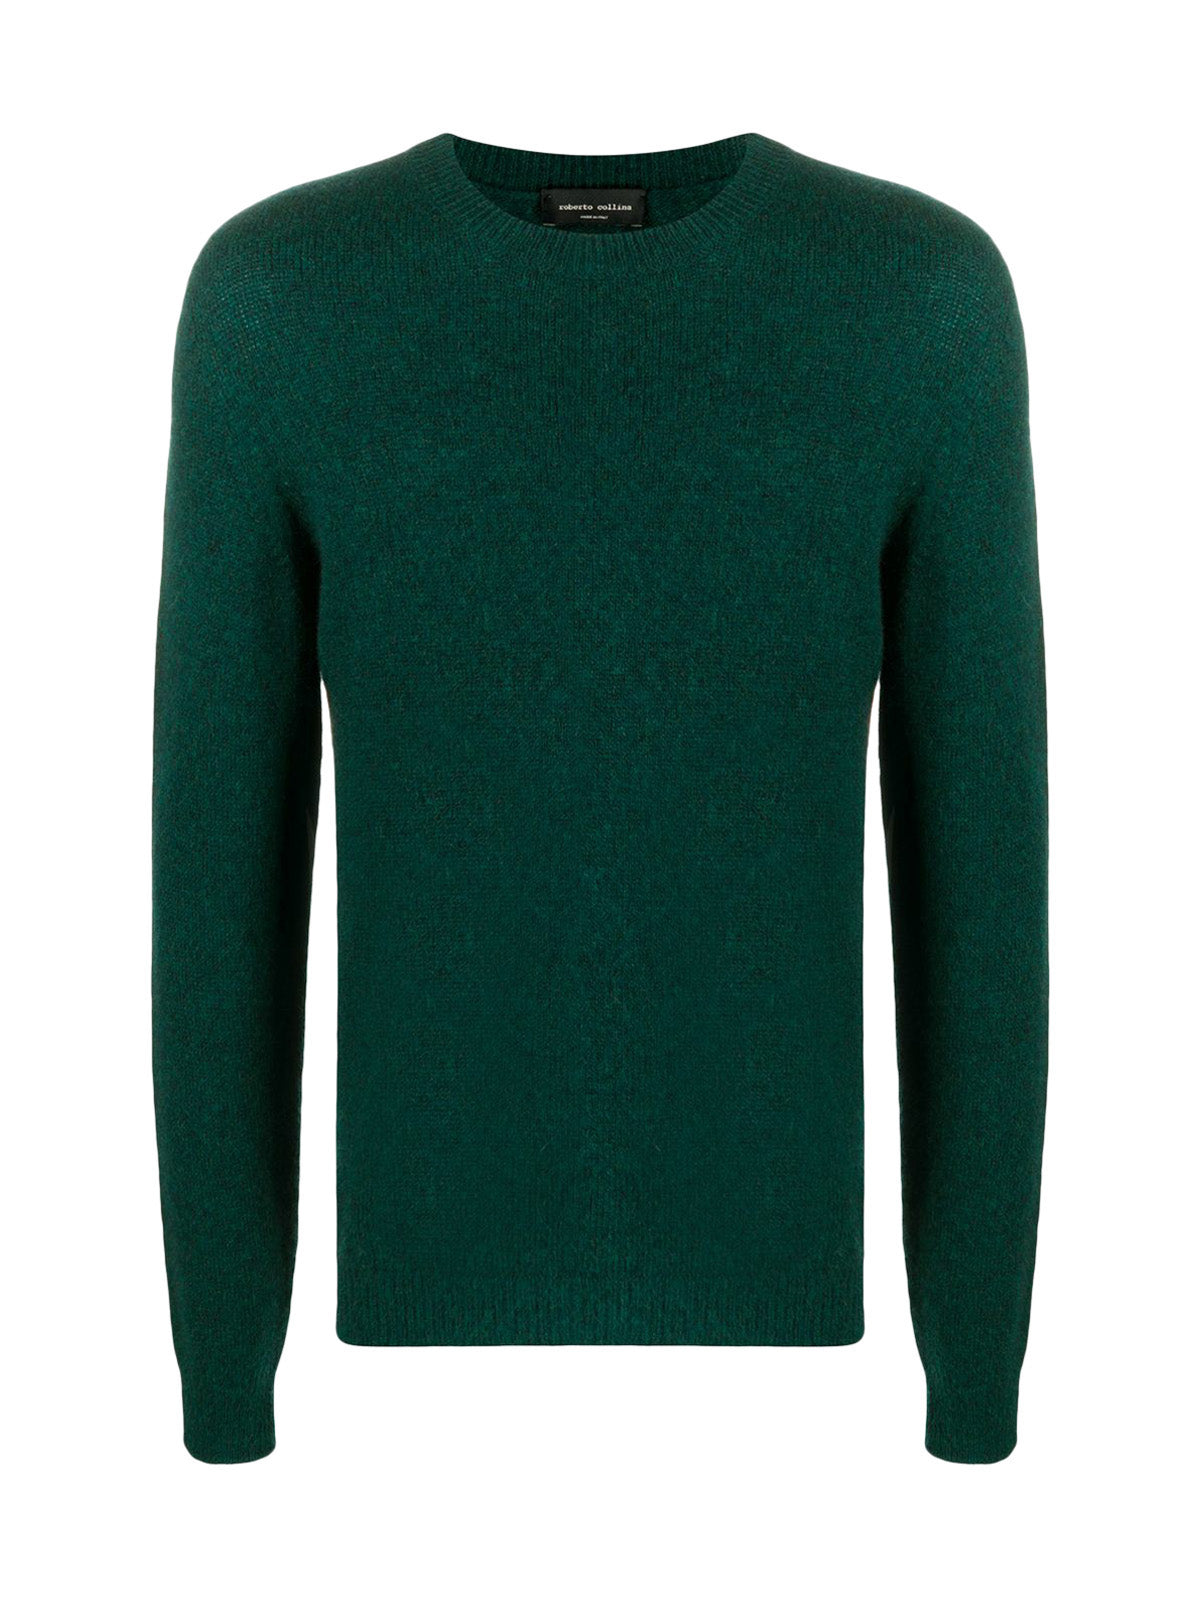 fine-knit crew neck jumper